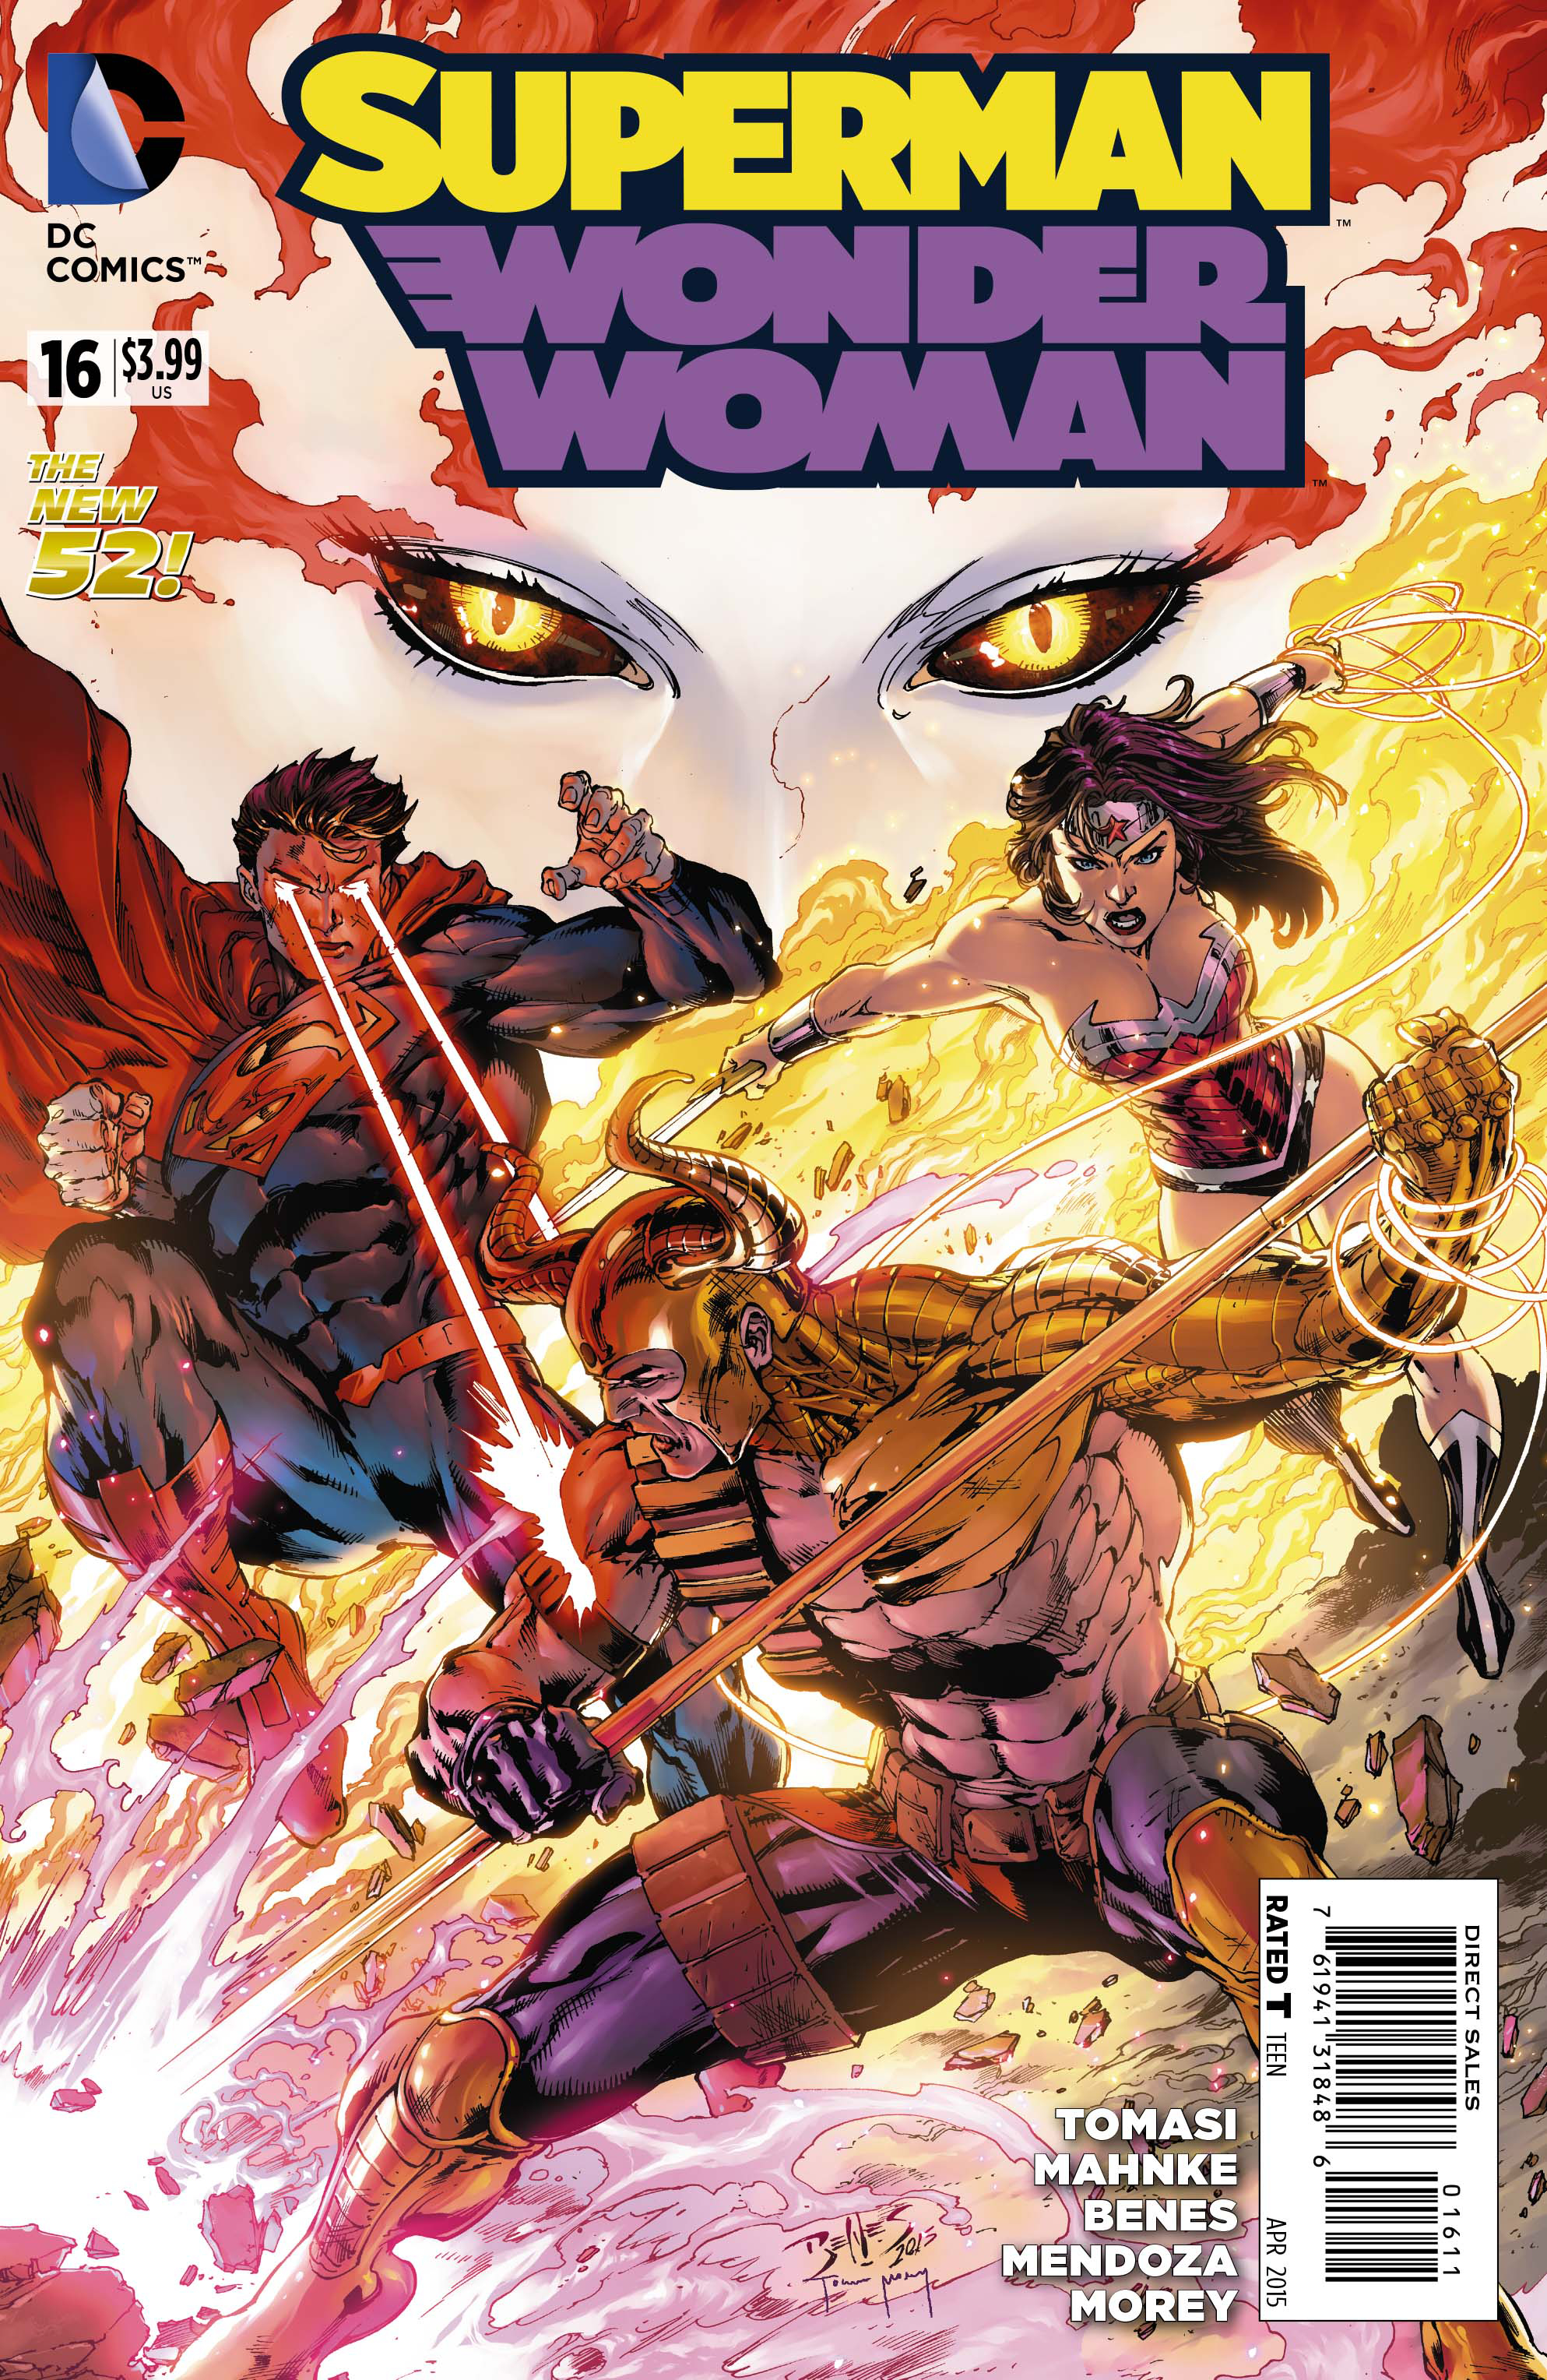 SUPERMAN WONDER WOMAN #16